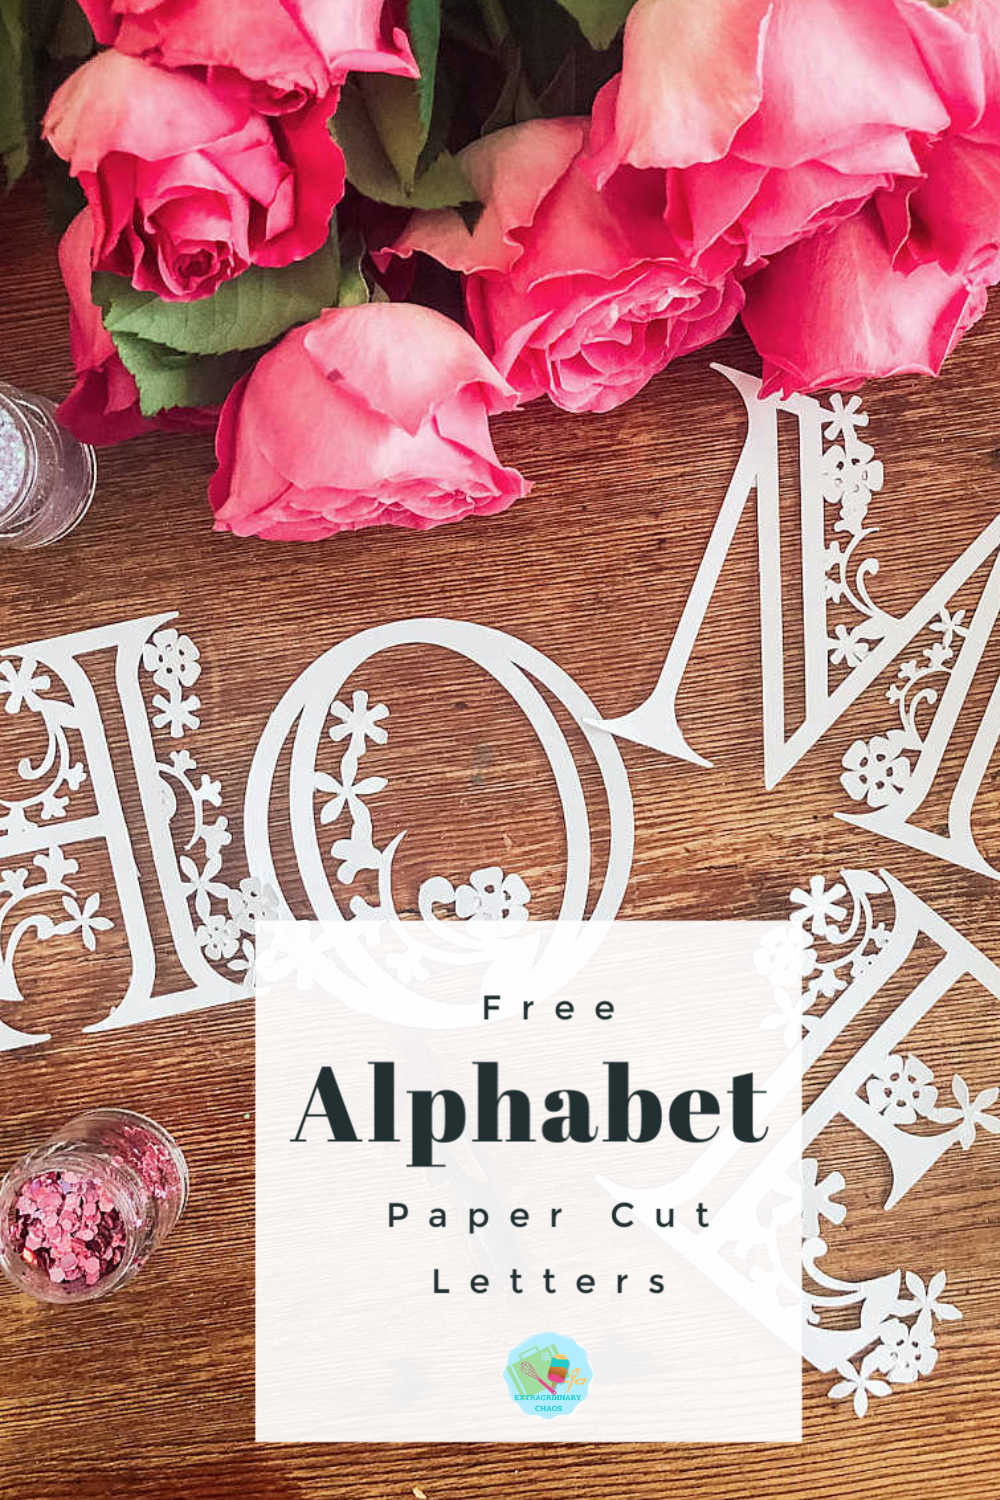 Free Cricut Floral Alphabet Templates For Paper And Vinyl to cut on the cricut maker, explore and Cricut Joy. Great for cutting out gifts or paper cuts to sell